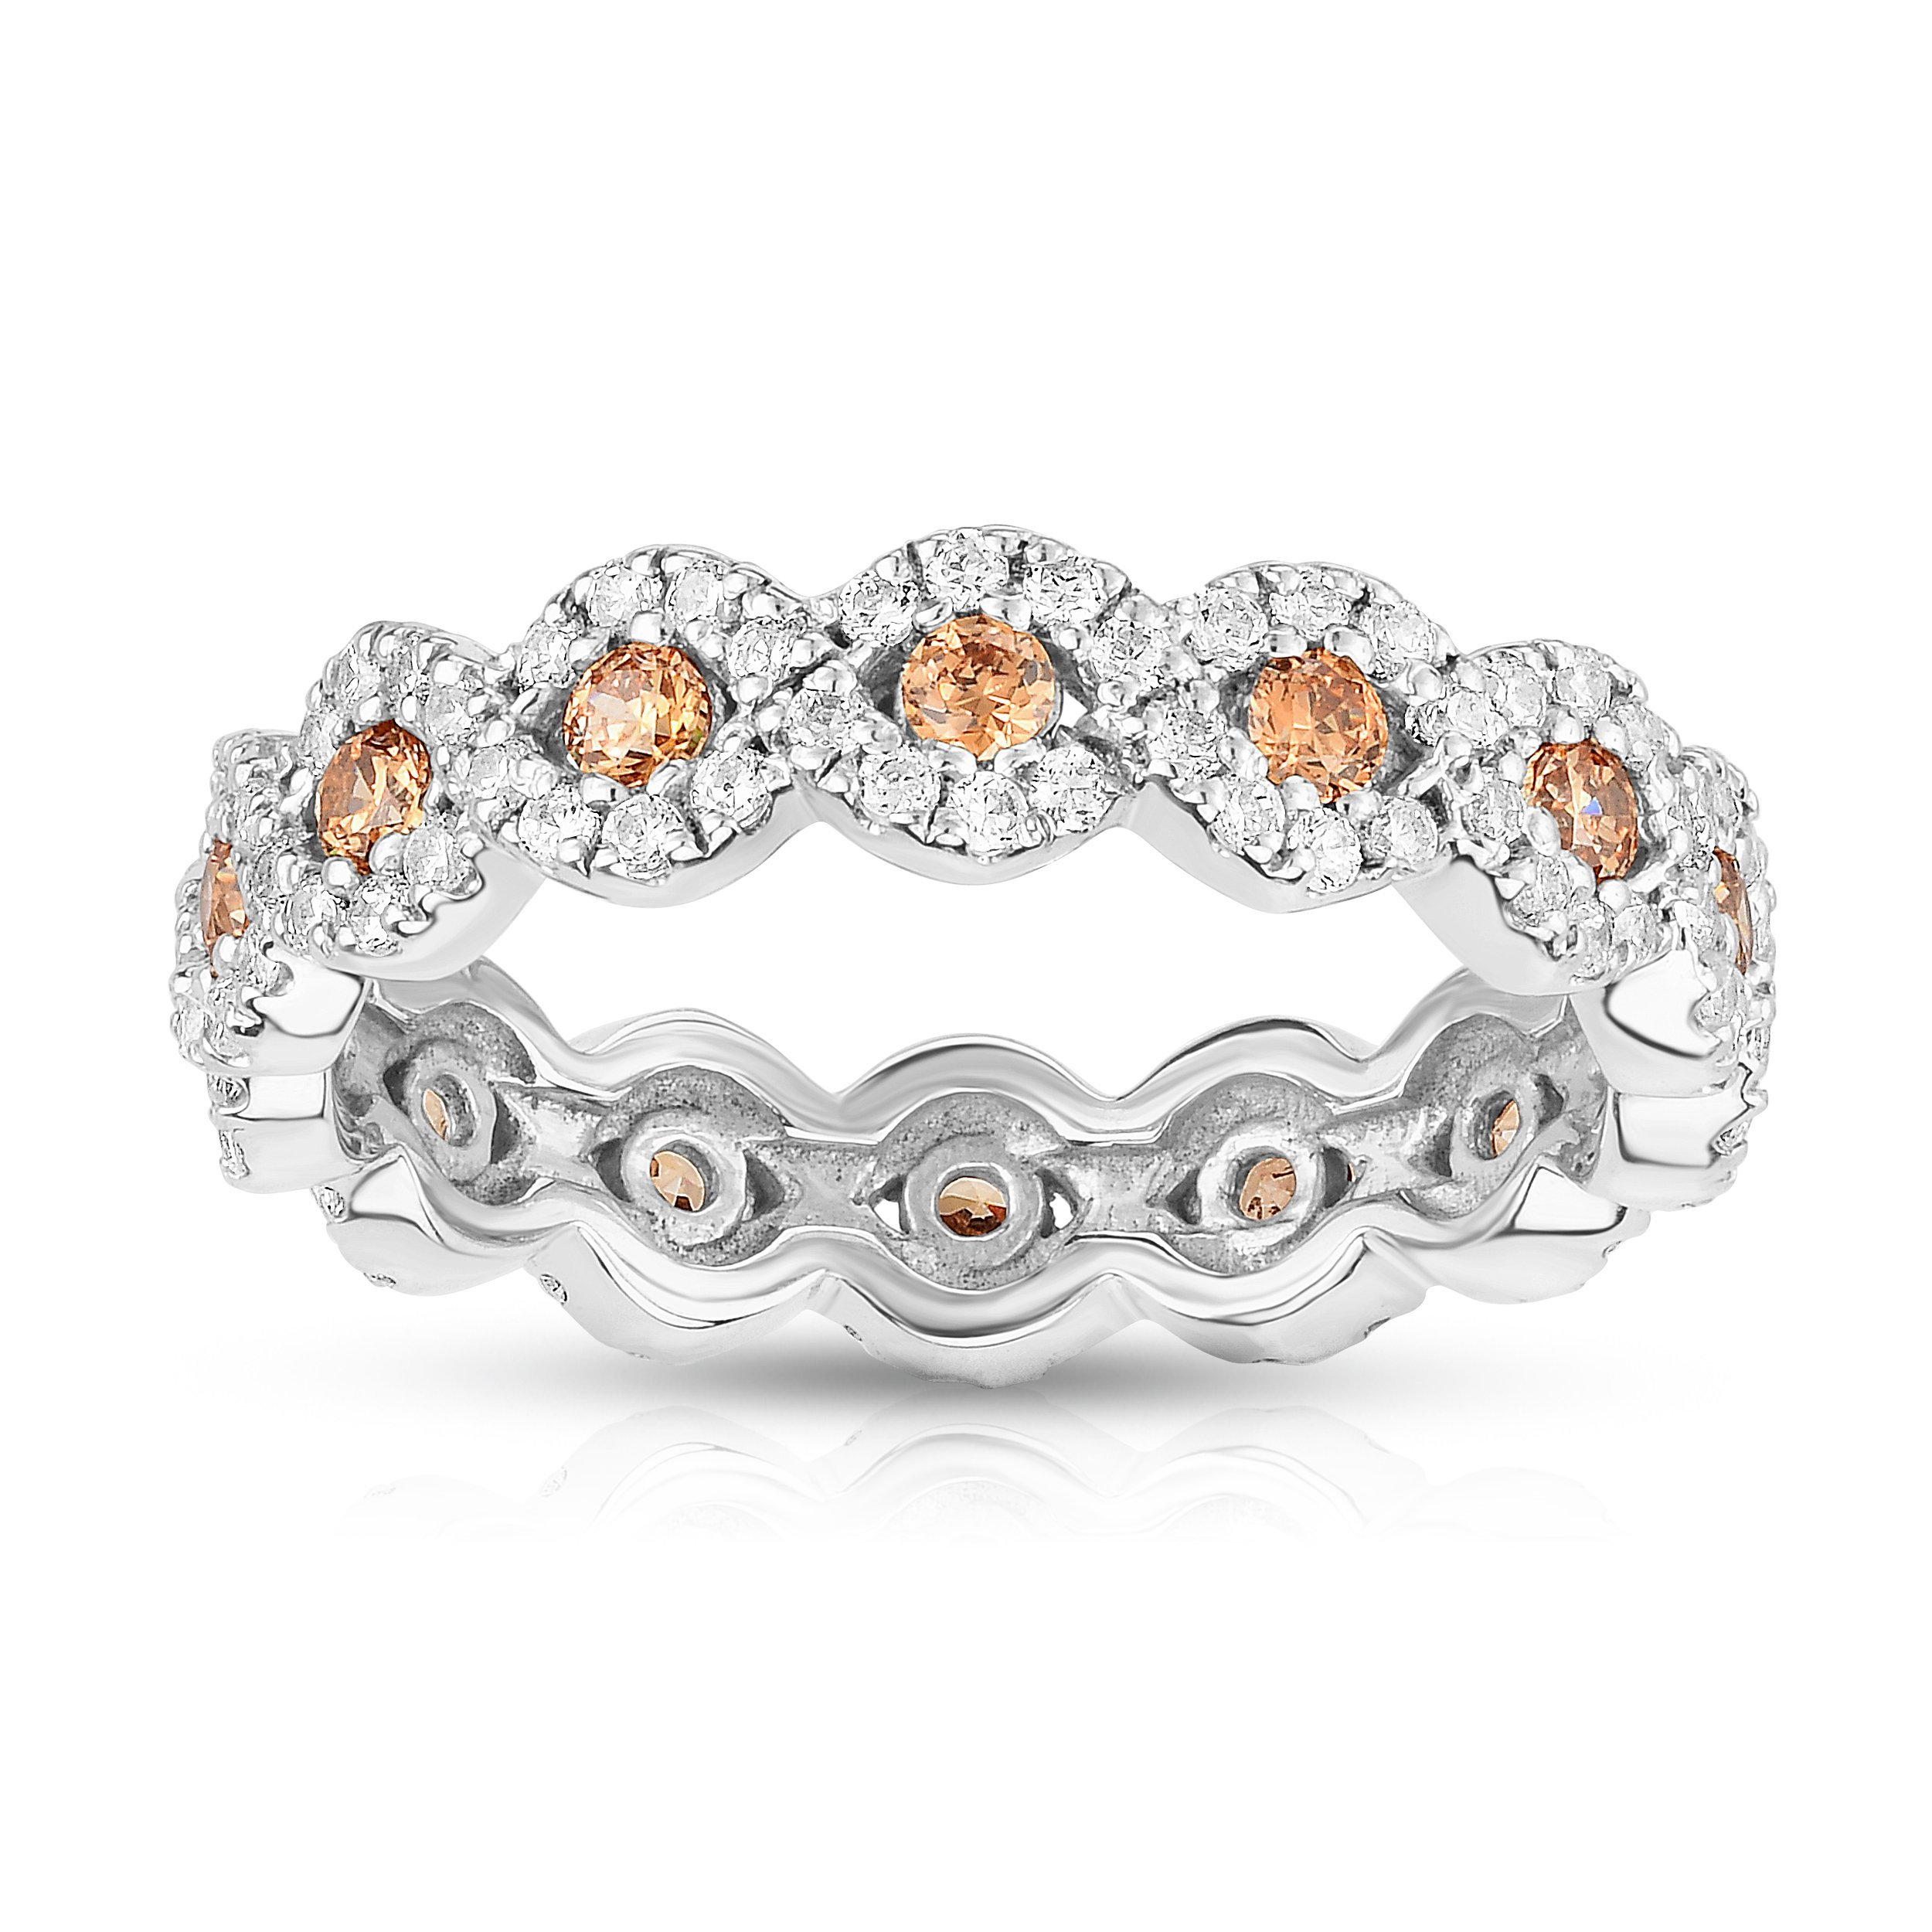 Noray Designs 14K White Gold Champagne Diamond (1.00 Ct, Brown/G-H Color, SI2-I1 Clarity) Eternity Wedding Ring